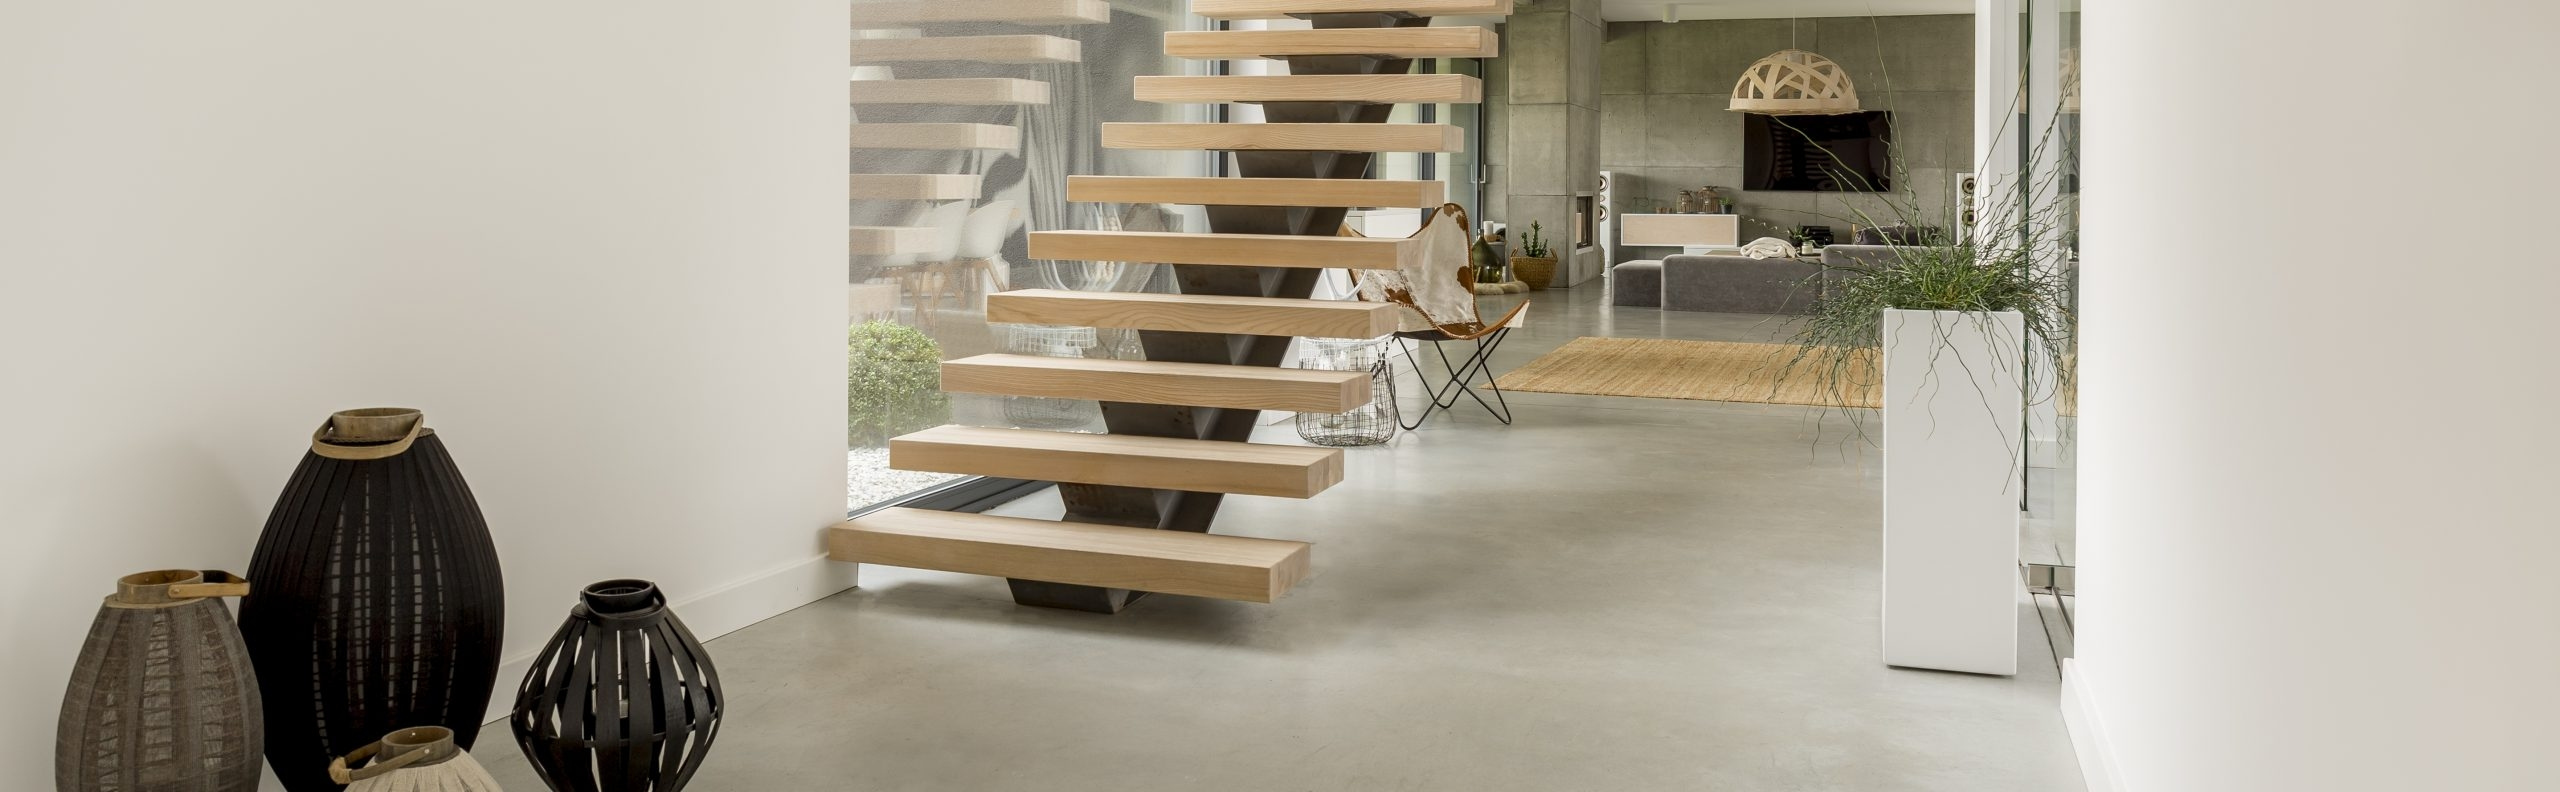 The Best Flooring Solutions For Your Stairs Floorscapes Inc   Industrial Carpet For Stairs   Shaw Floors   Persian Carpet   Stair Railing   Carpet Workroom   Handrail